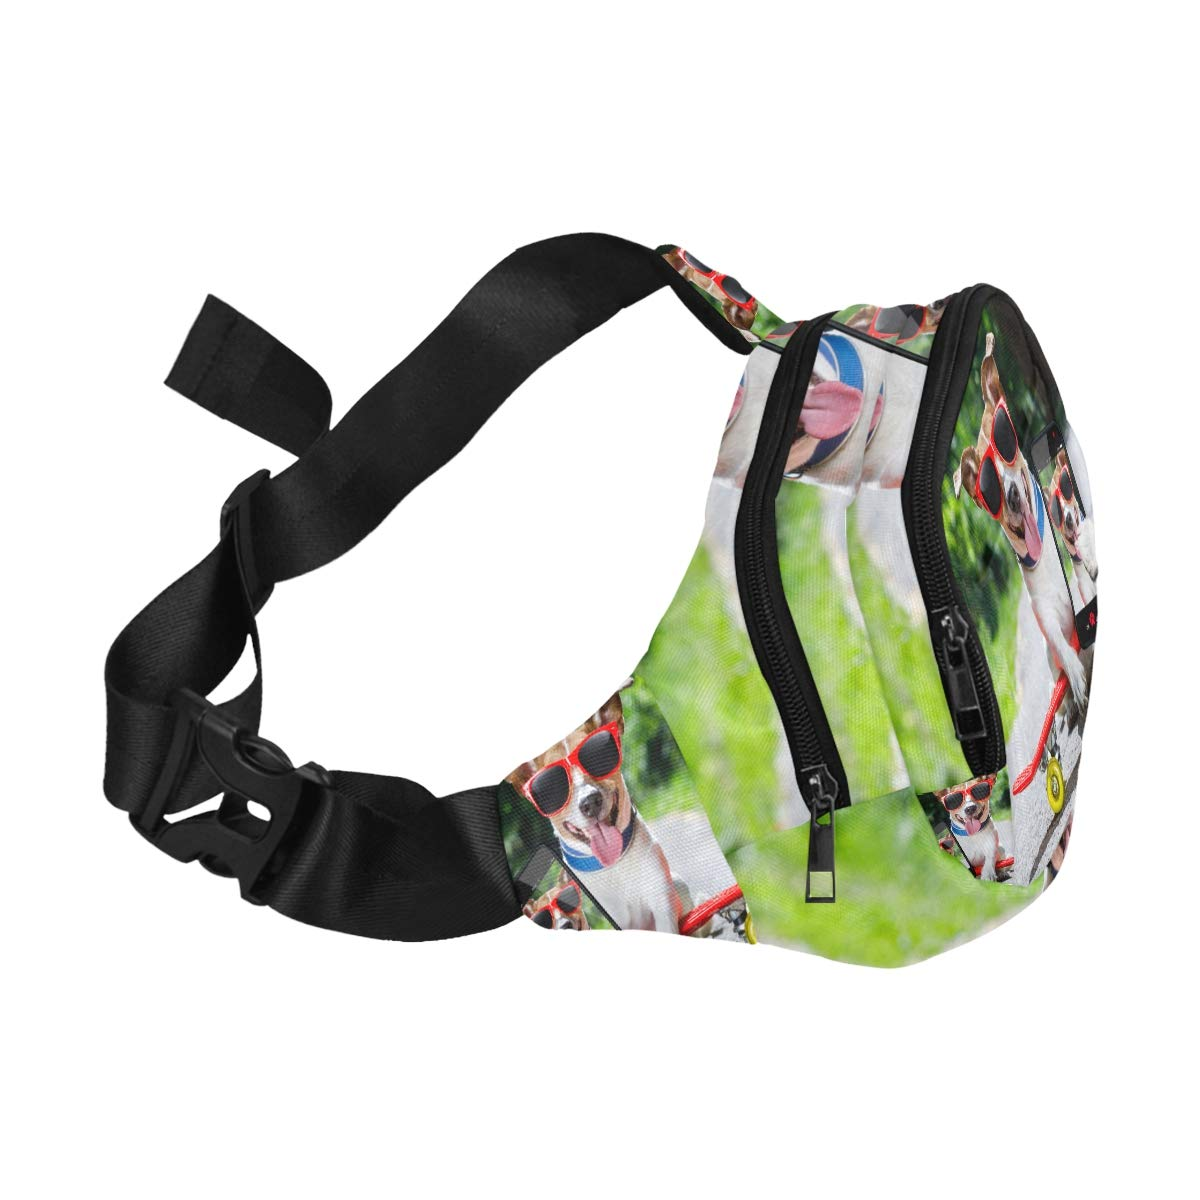 The Cute Dog Rides On A Skateboard Fenny Packs Waist Bags Adjustable Belt Waterproof Nylon Travel Running Sport Vacation Party For Men Women Boys Girls Kids